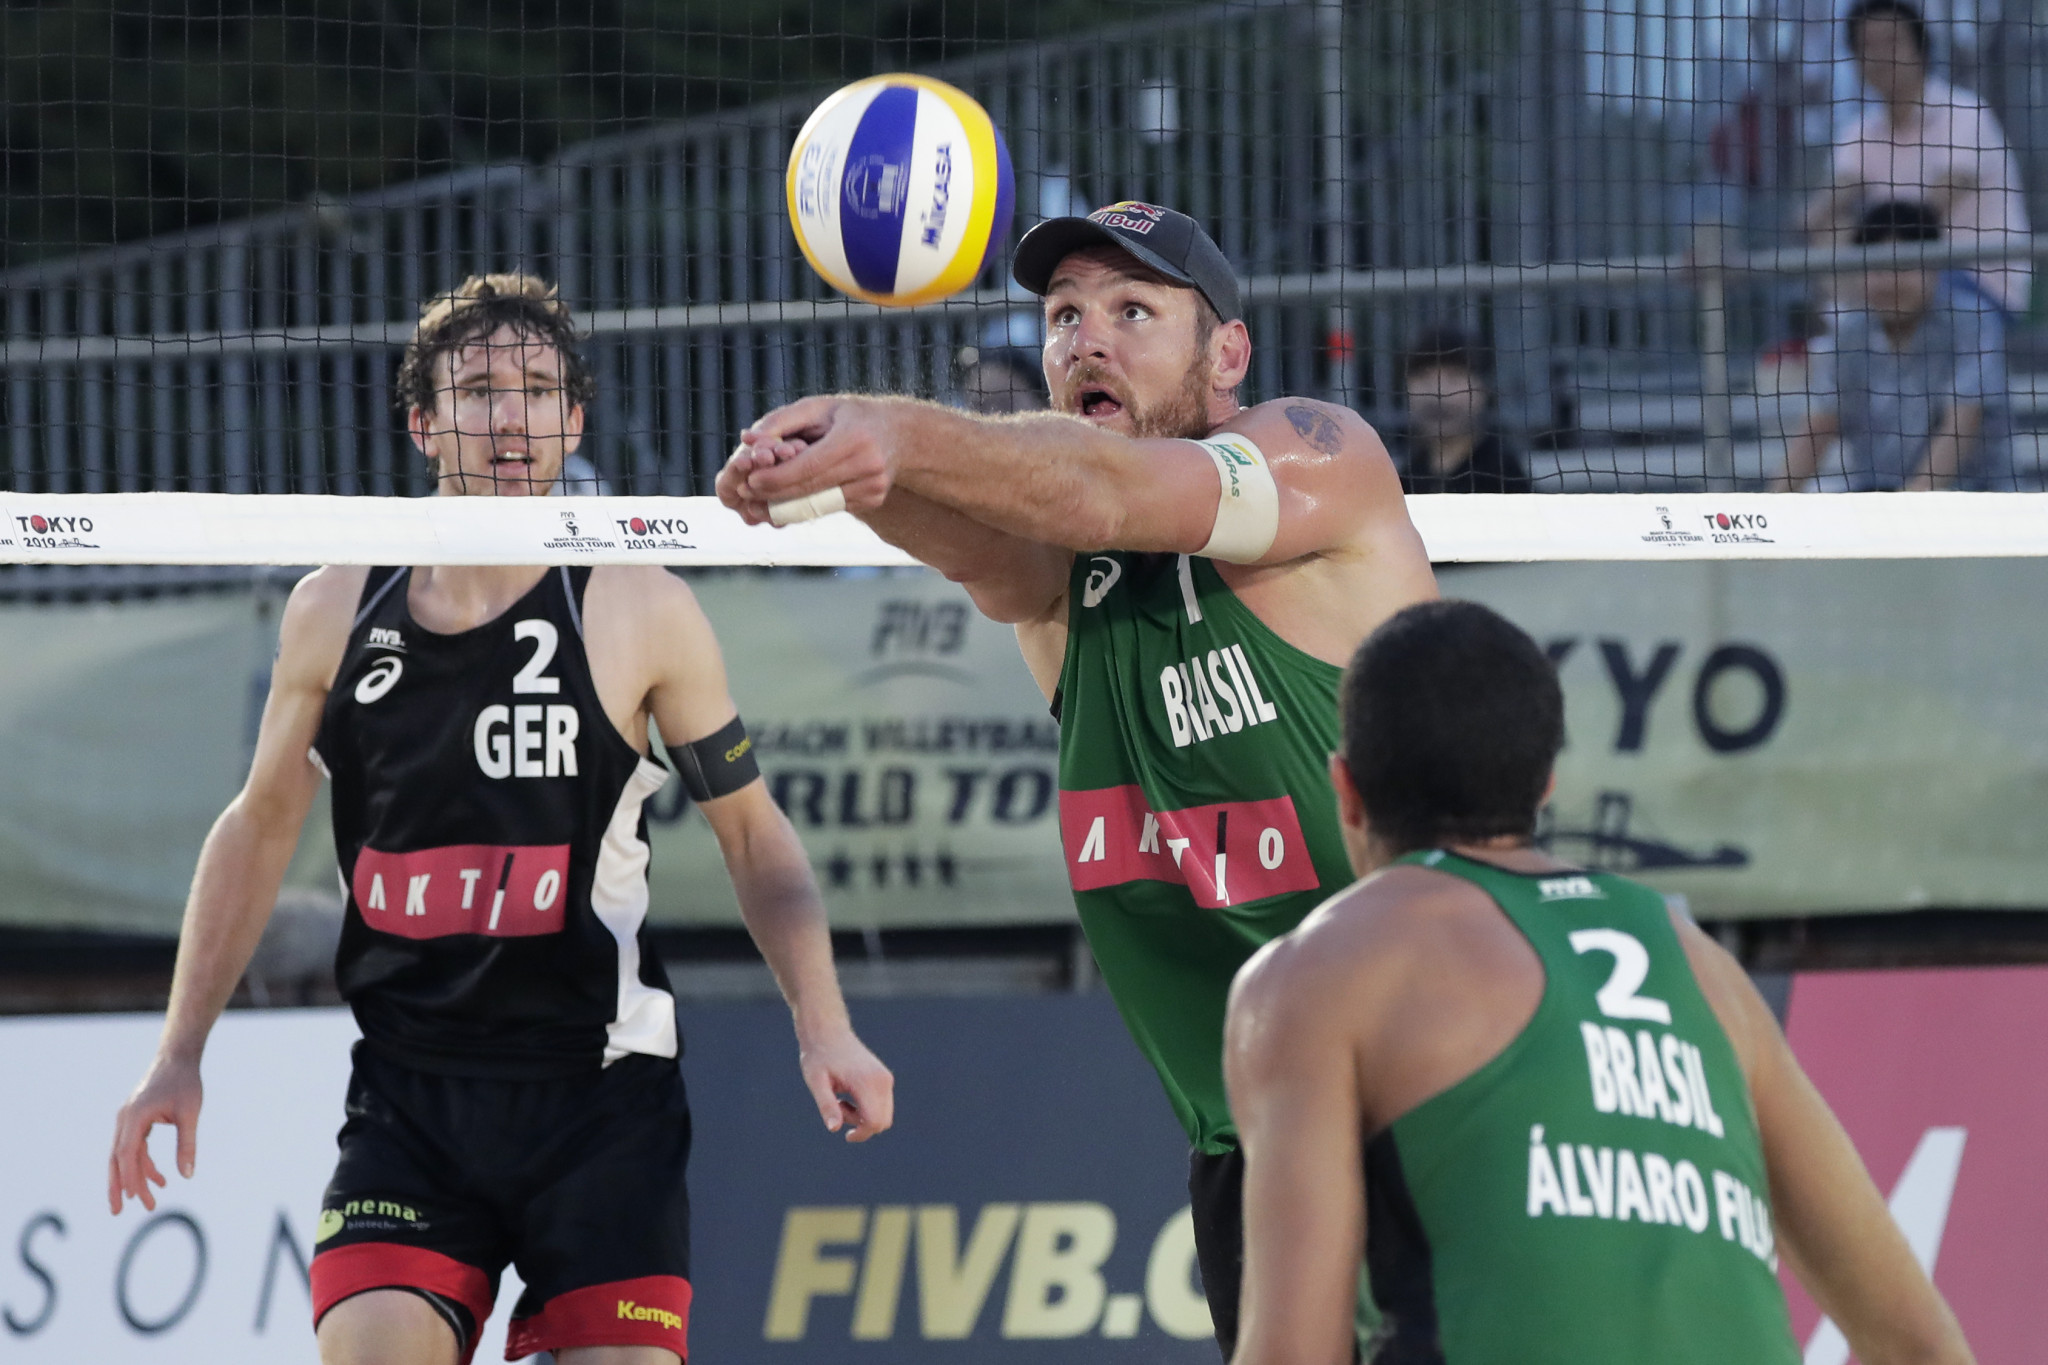 Alison and Filho progress to quarter-finals of Beach Volleyball World Tour in Cancun